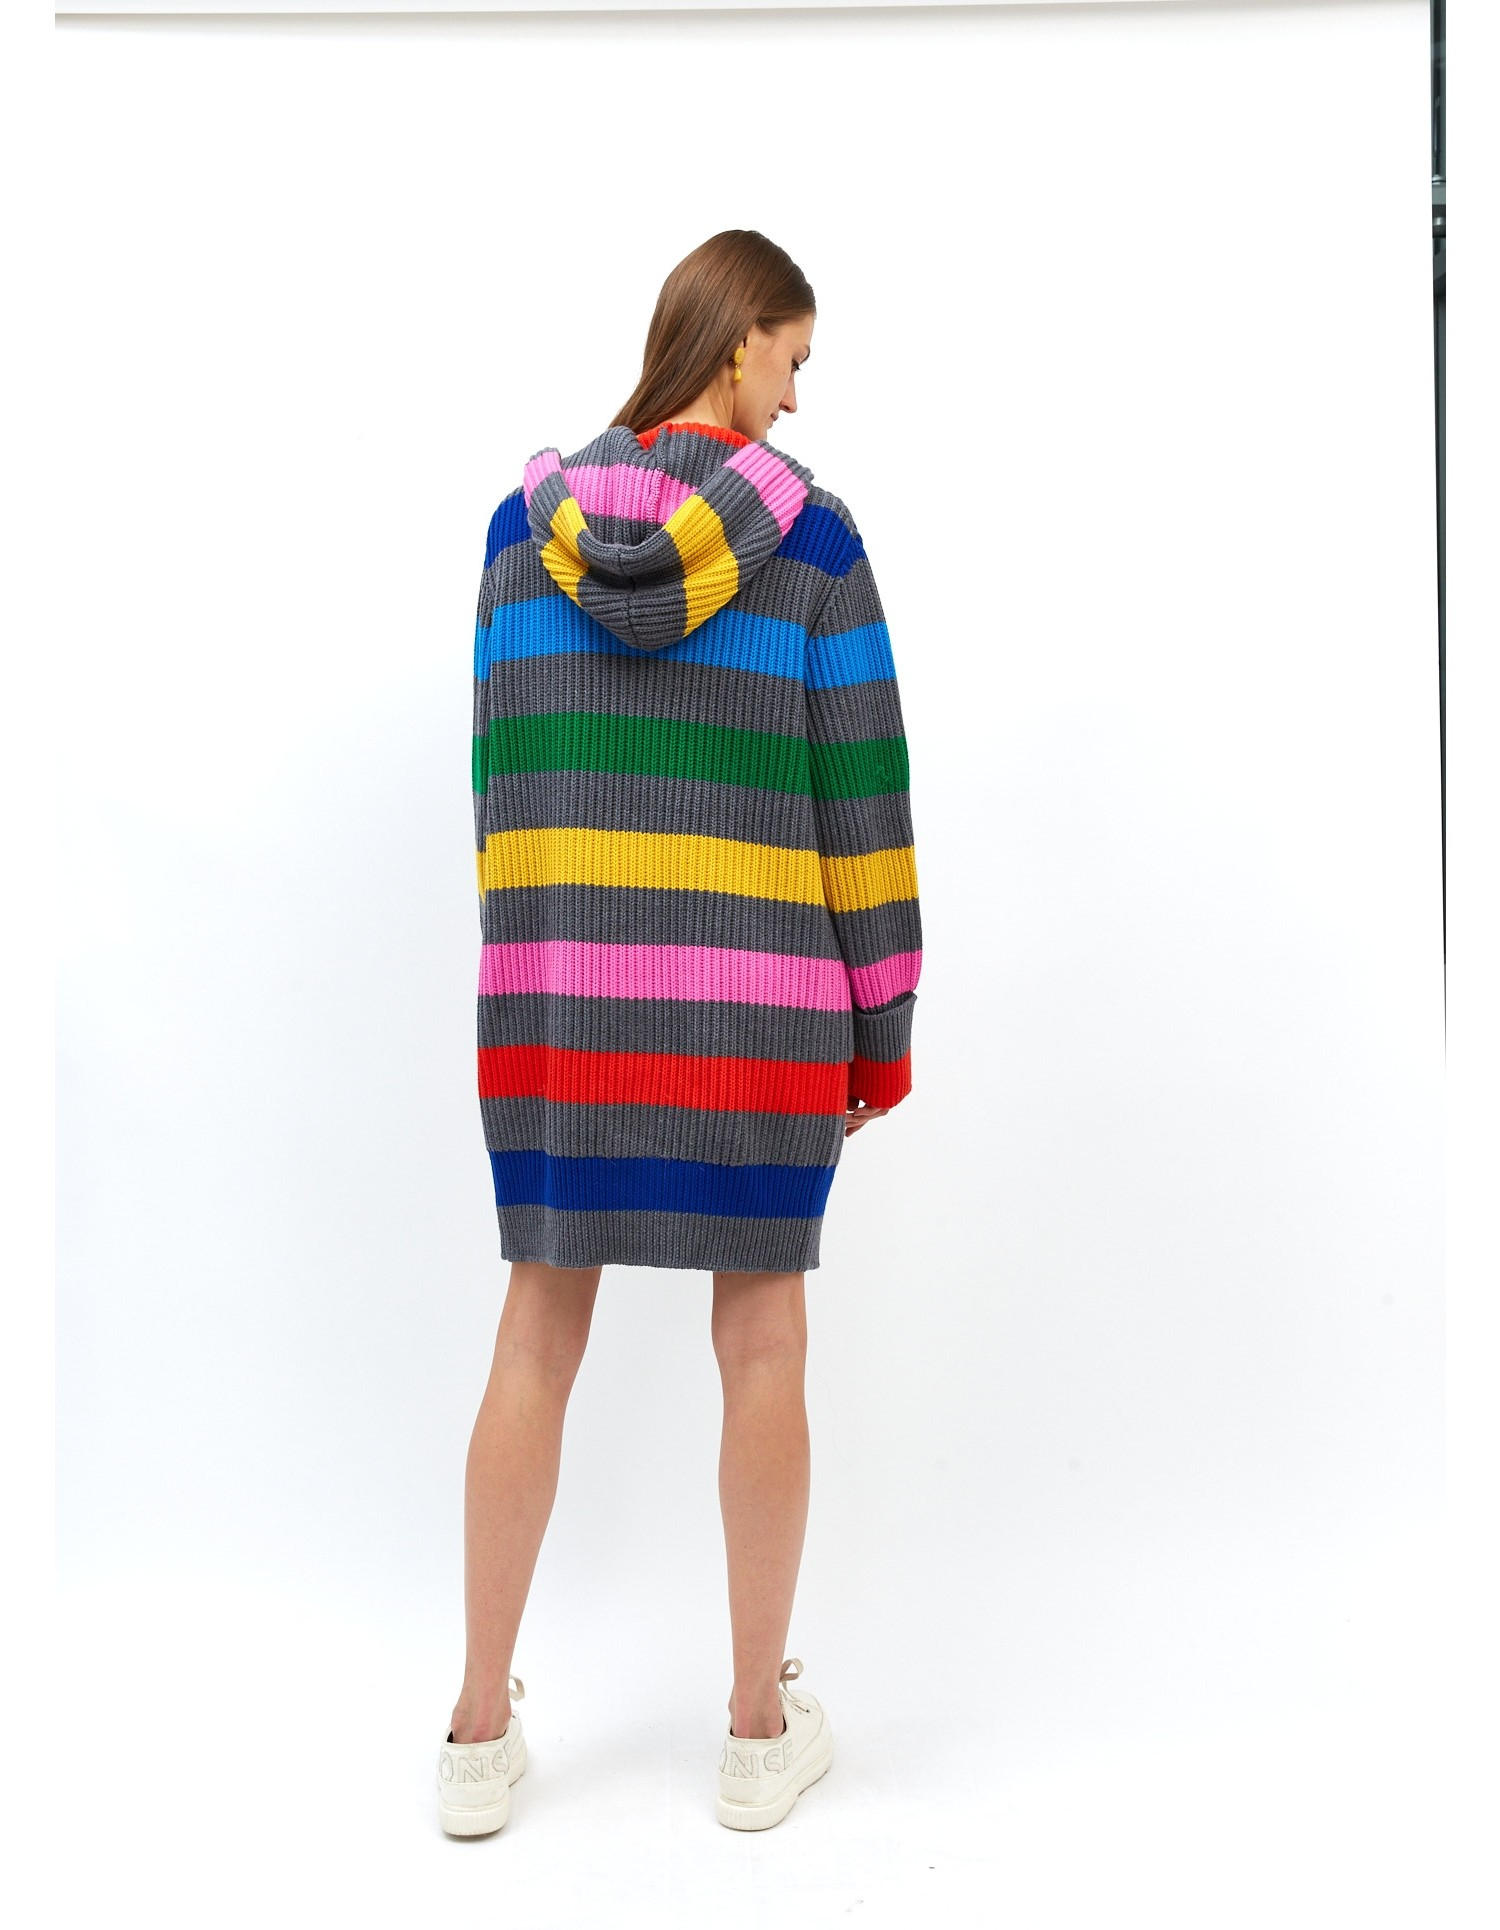 MONSE Chunky Rainbow Striped Knit Cardigan on Model Front View